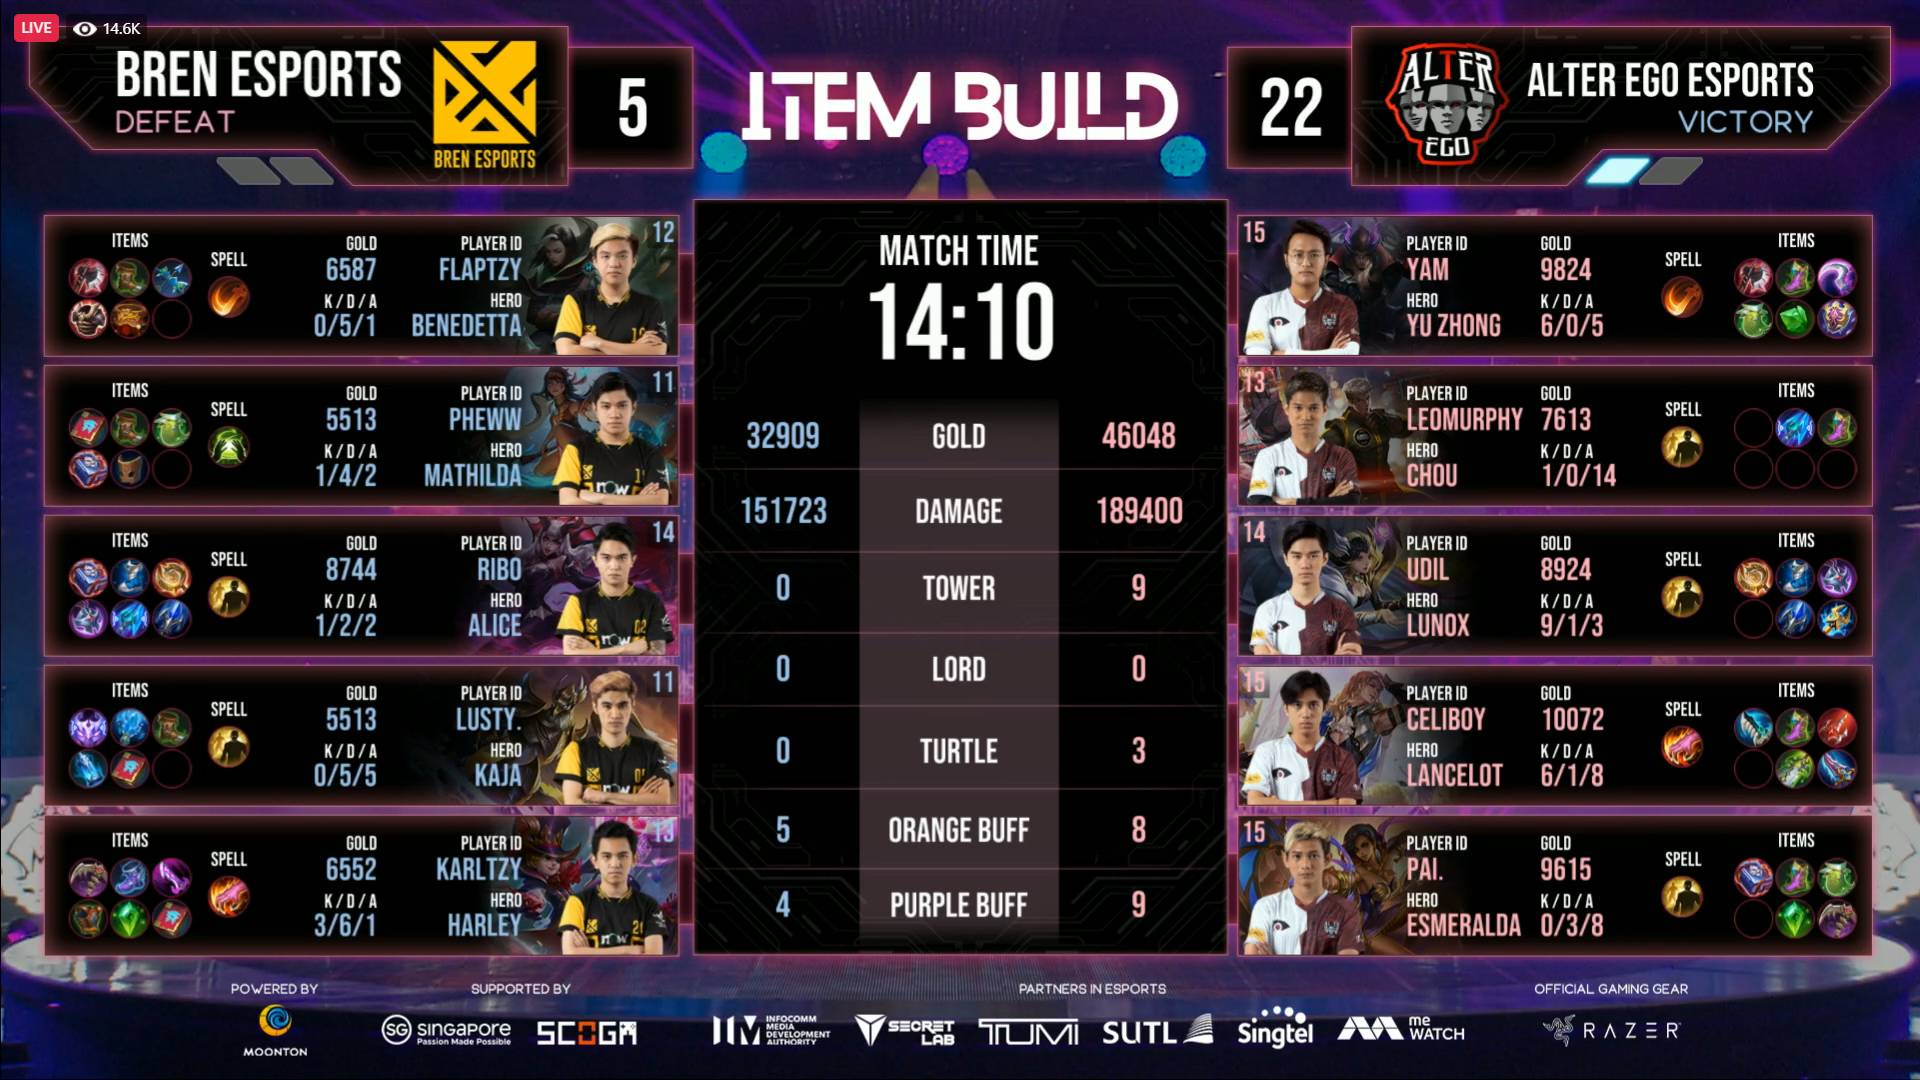 2021-M2-World-Championship-BREN-def-Alter-Ego-2-GAme-One KarlTzy boots out Alter Ego, lifts BREN Esports to M2 Lower Bracket Finals ESports Mobile Legends MPL-PH News  - philippine sports news